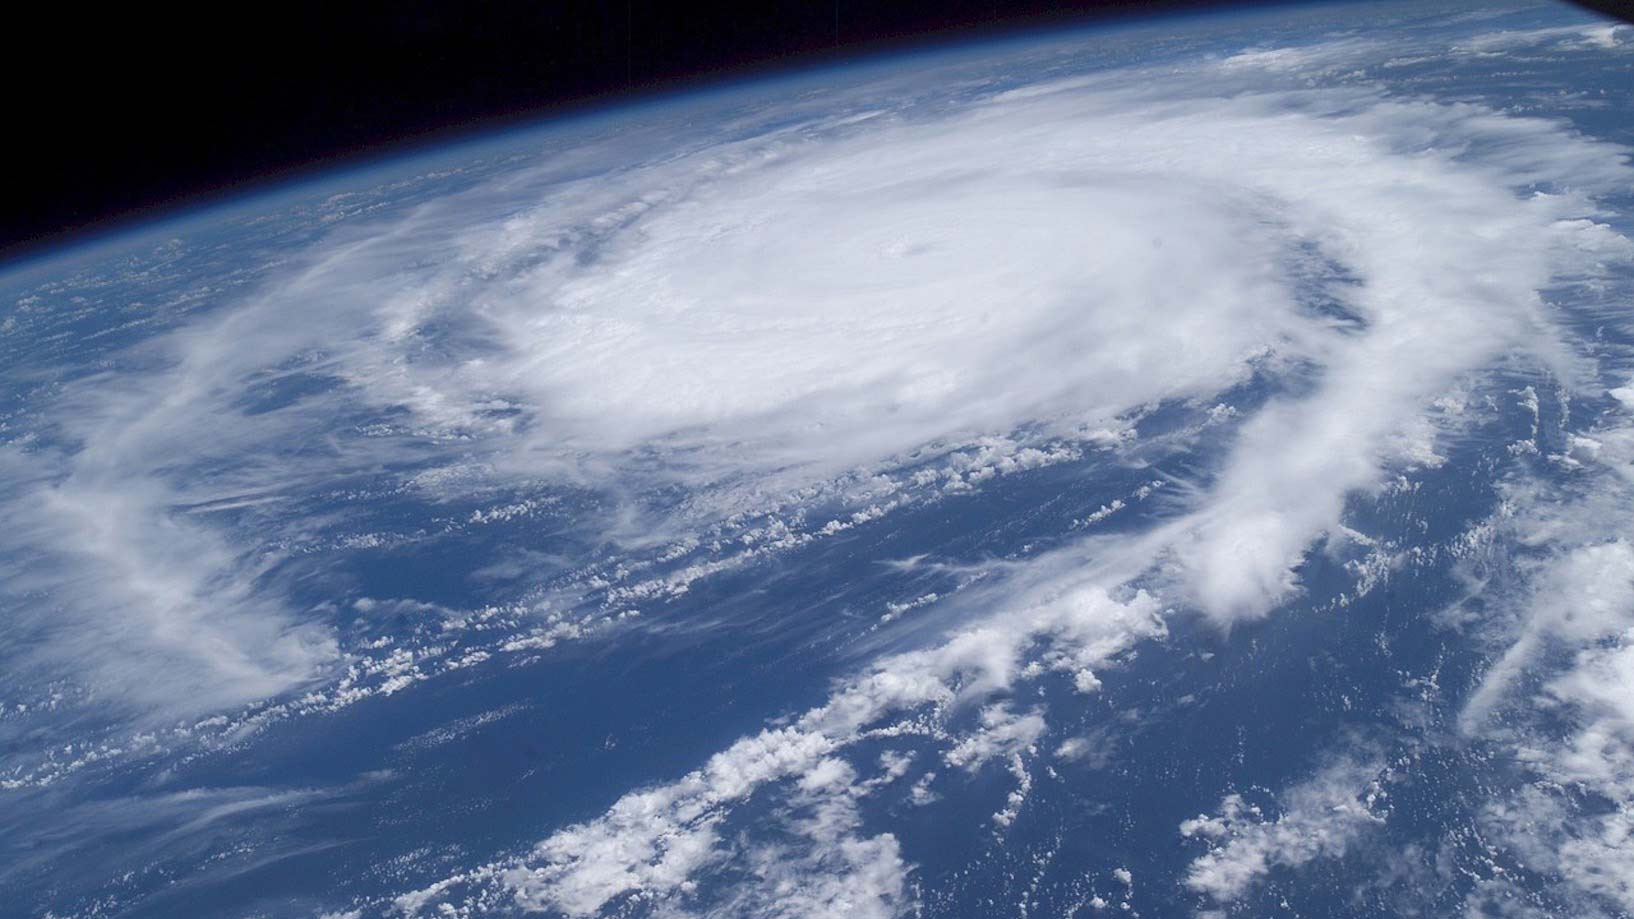 Hurricane Frances as seen from the International Space Station, 2004.